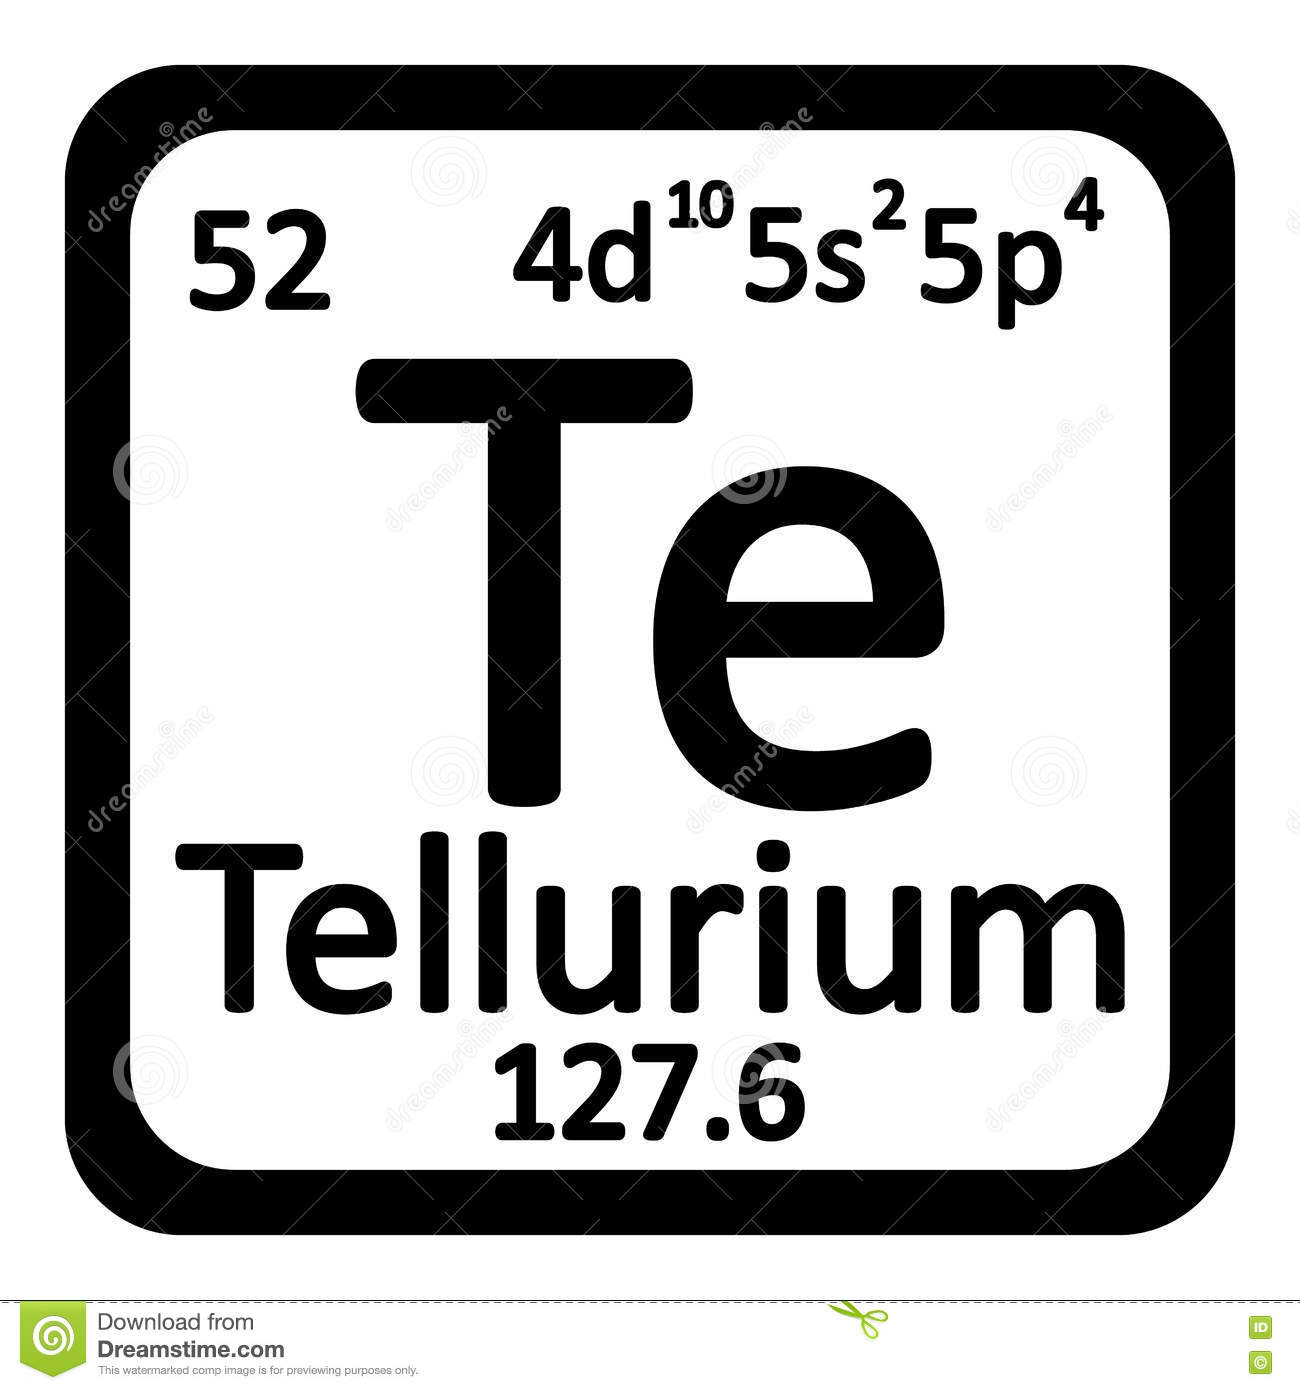 Periodic table element tellurium icon stock illustration image periodic table element tellurium icon gamestrikefo Choice Image